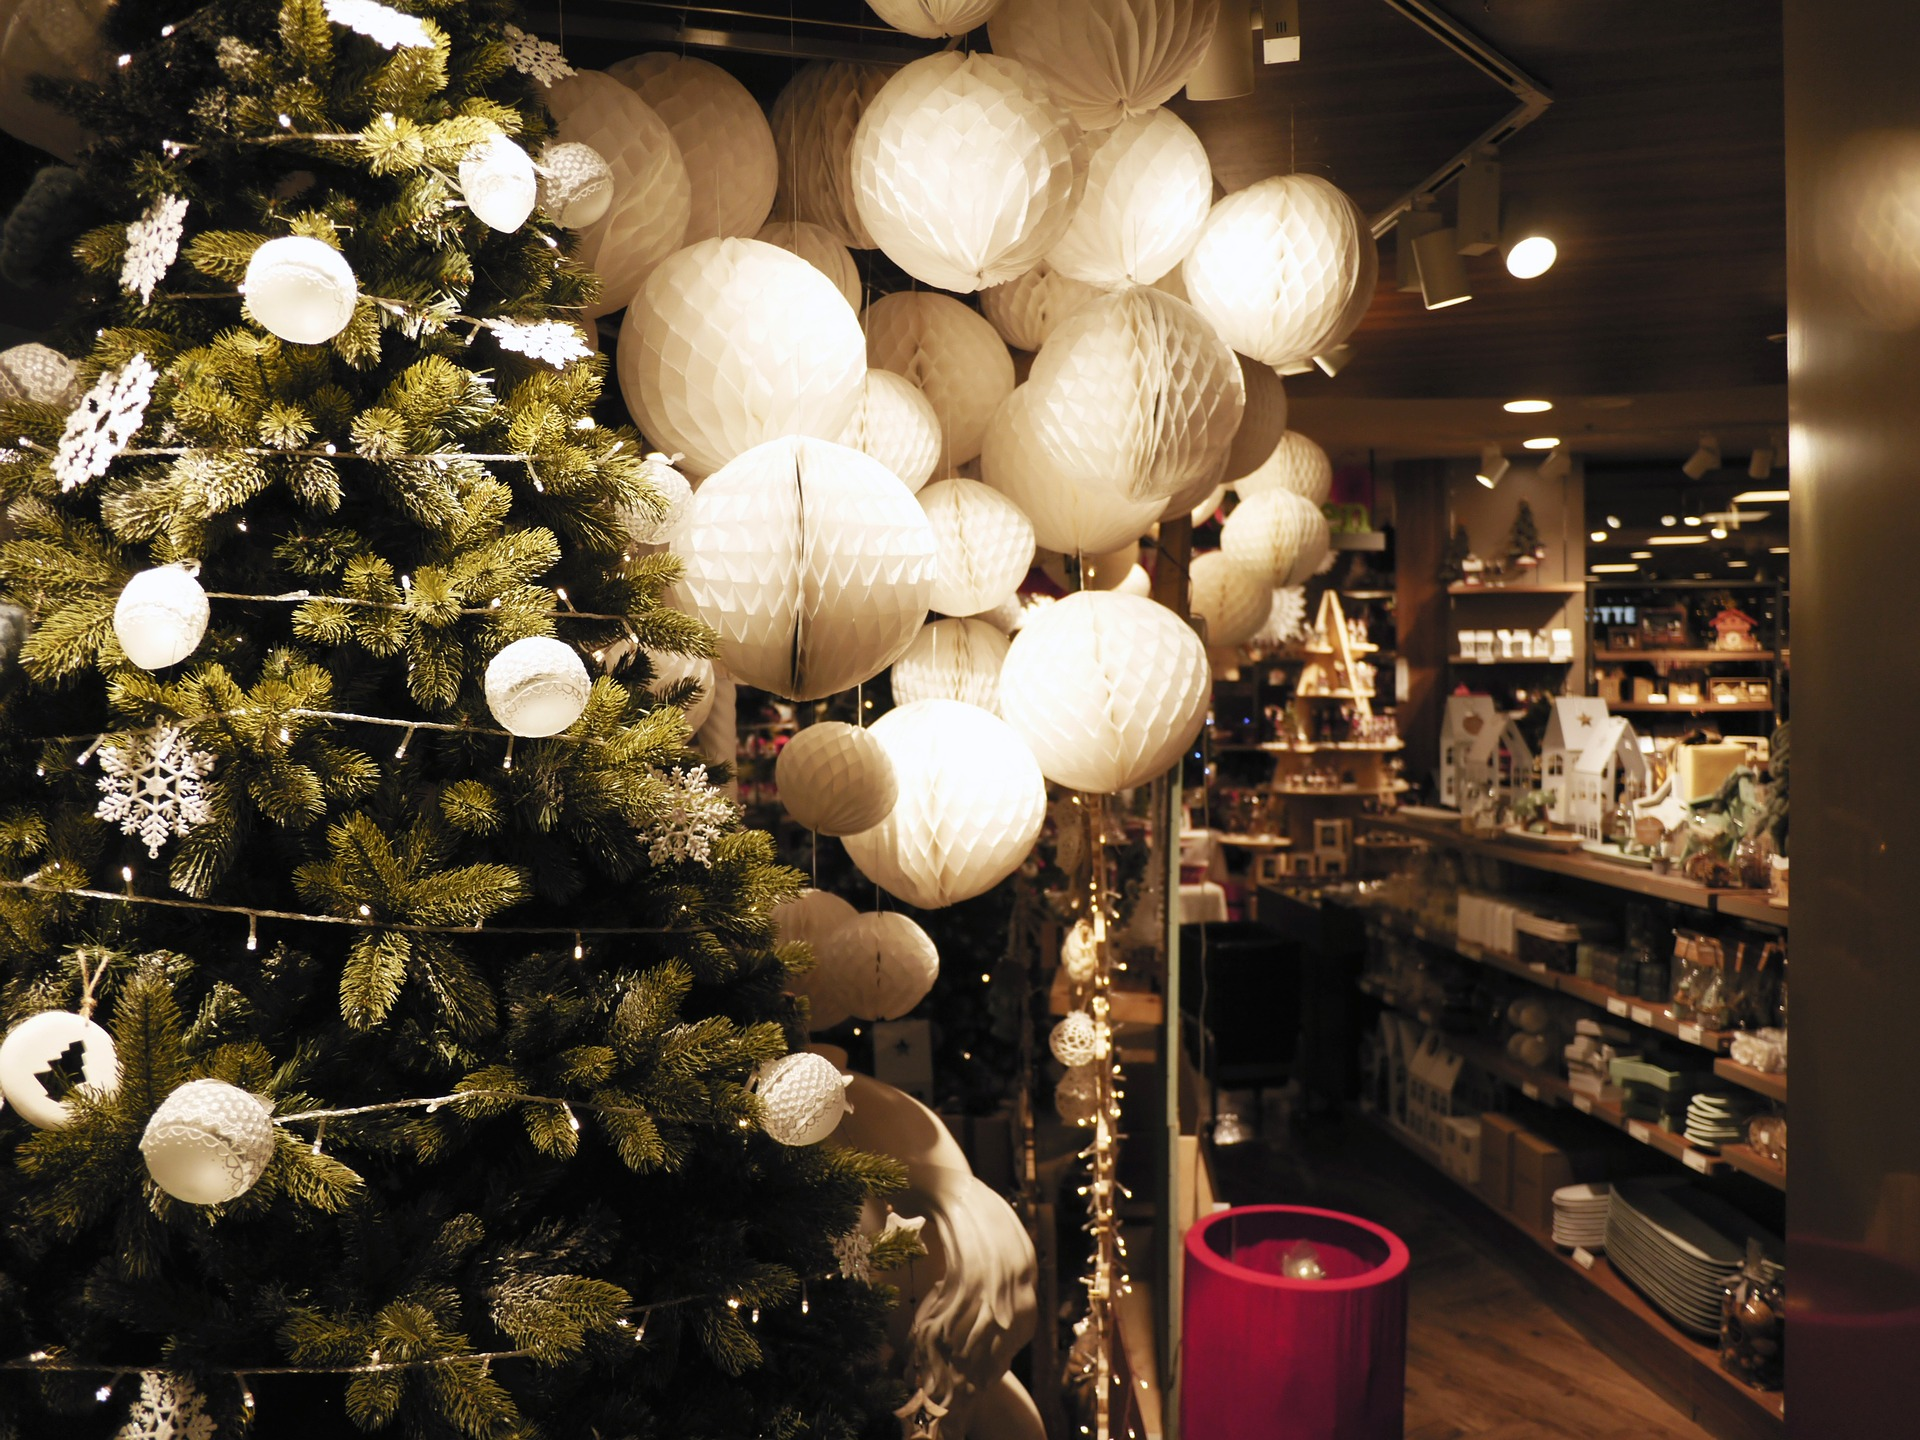 picture of christmas store with tree, lights, and other decorations